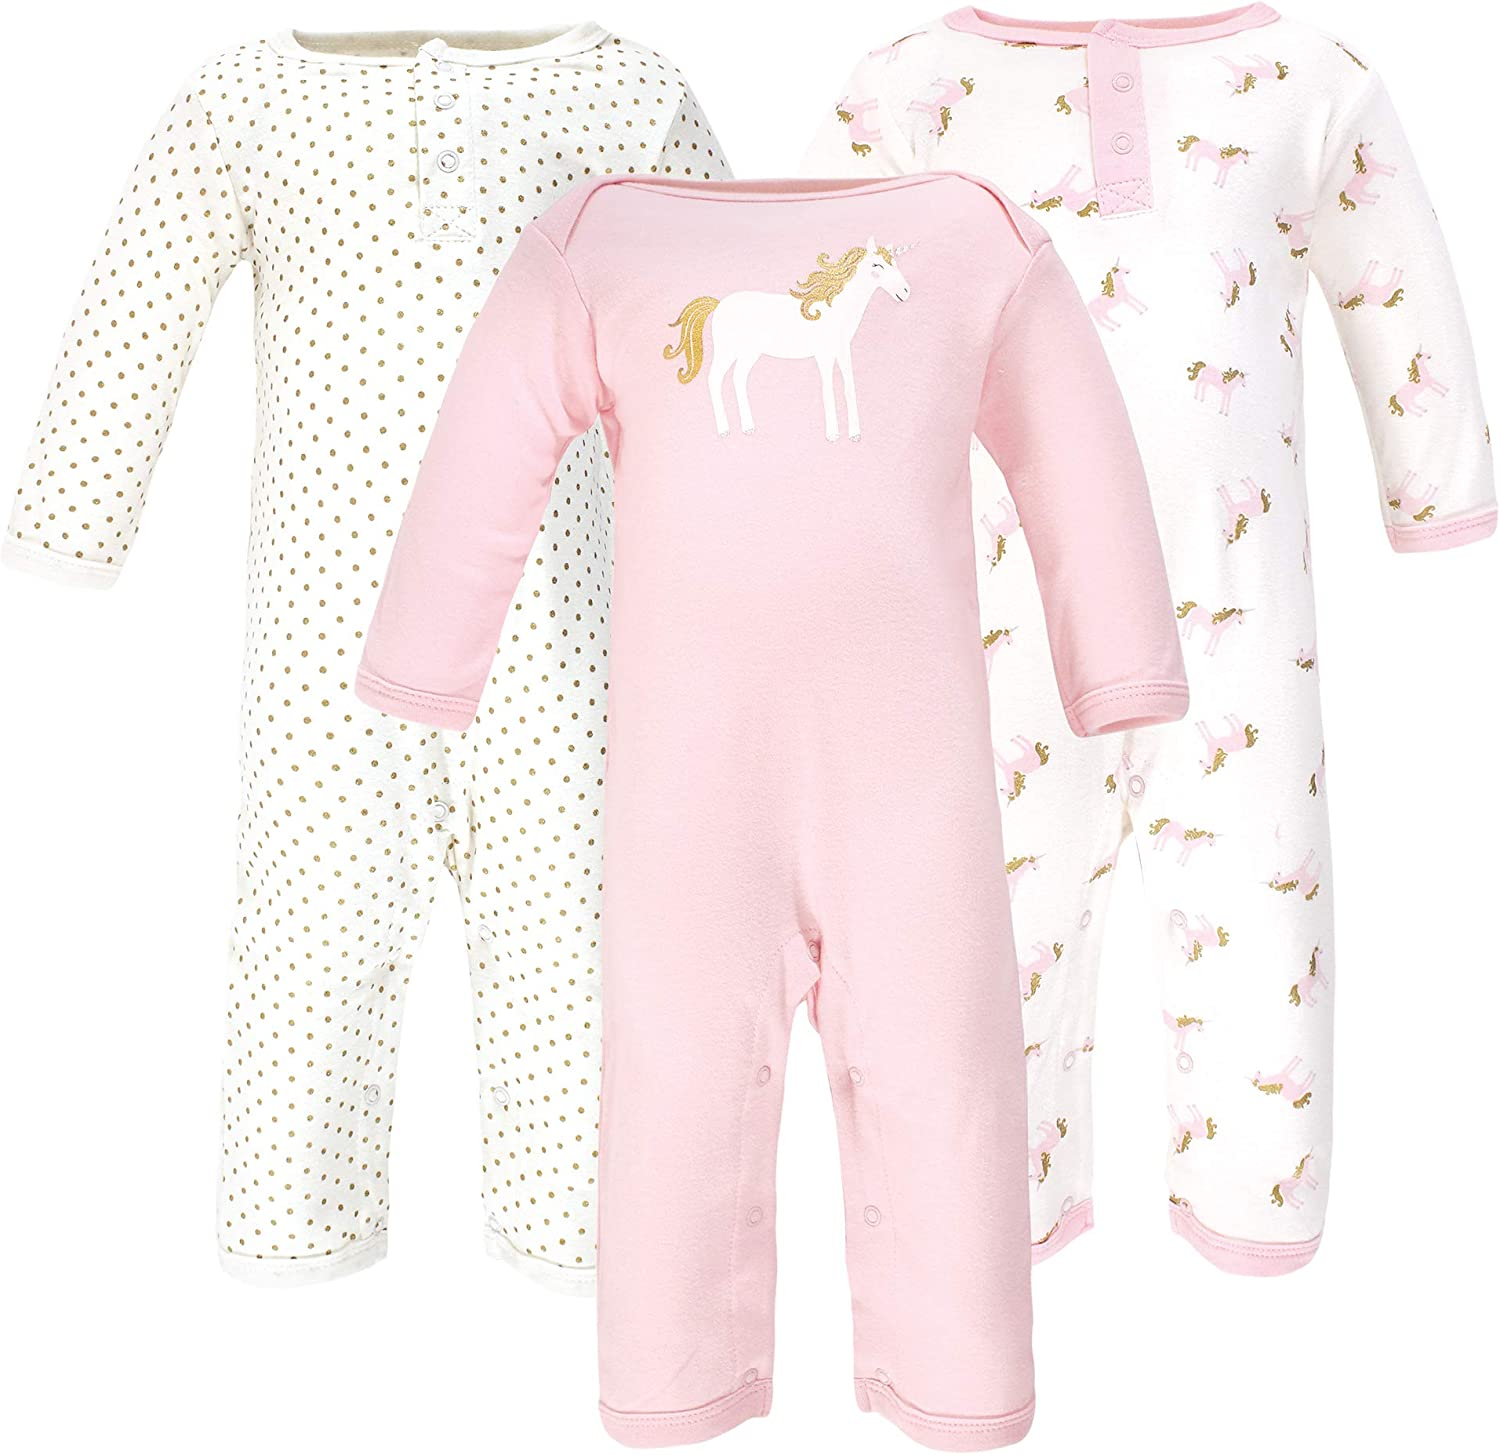 Hudson Baby Unisex Baby Cotton Coveralls